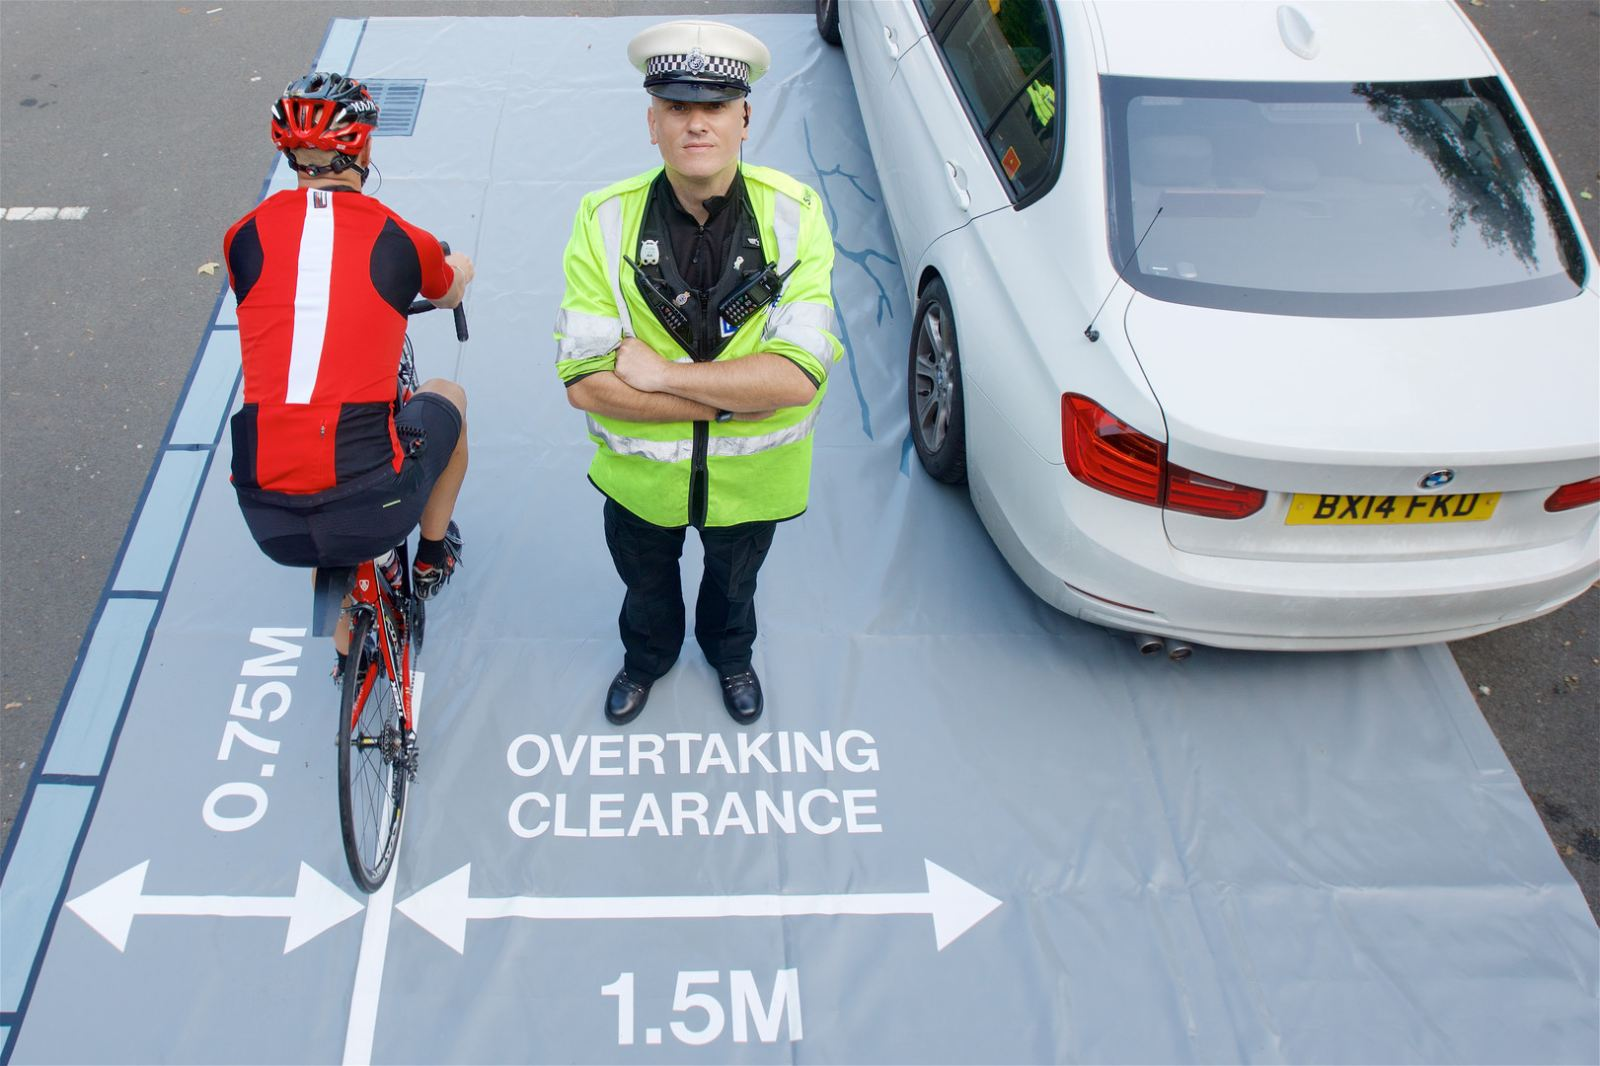 West Midlands Police close pass education mat